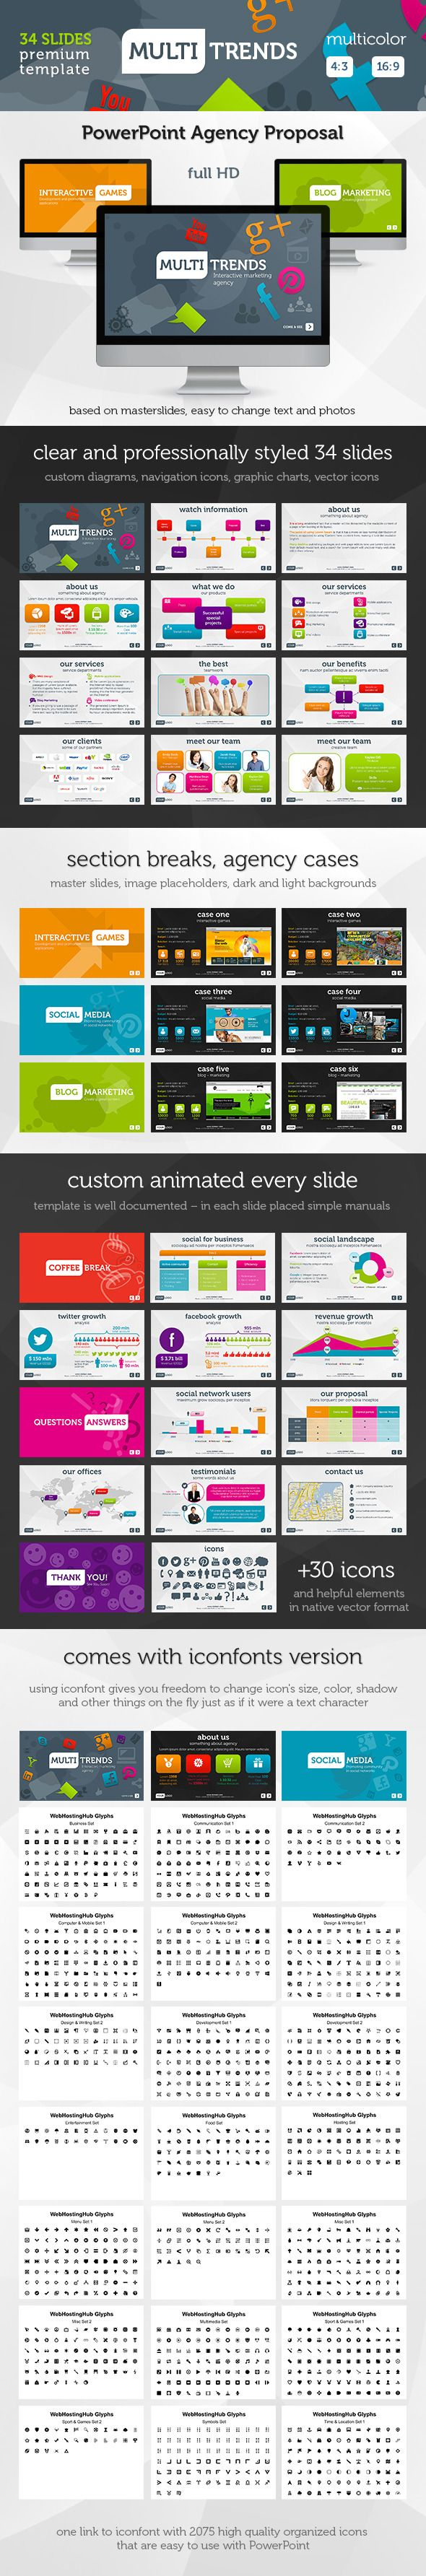 multi trends powerpoint presentation template this template is based